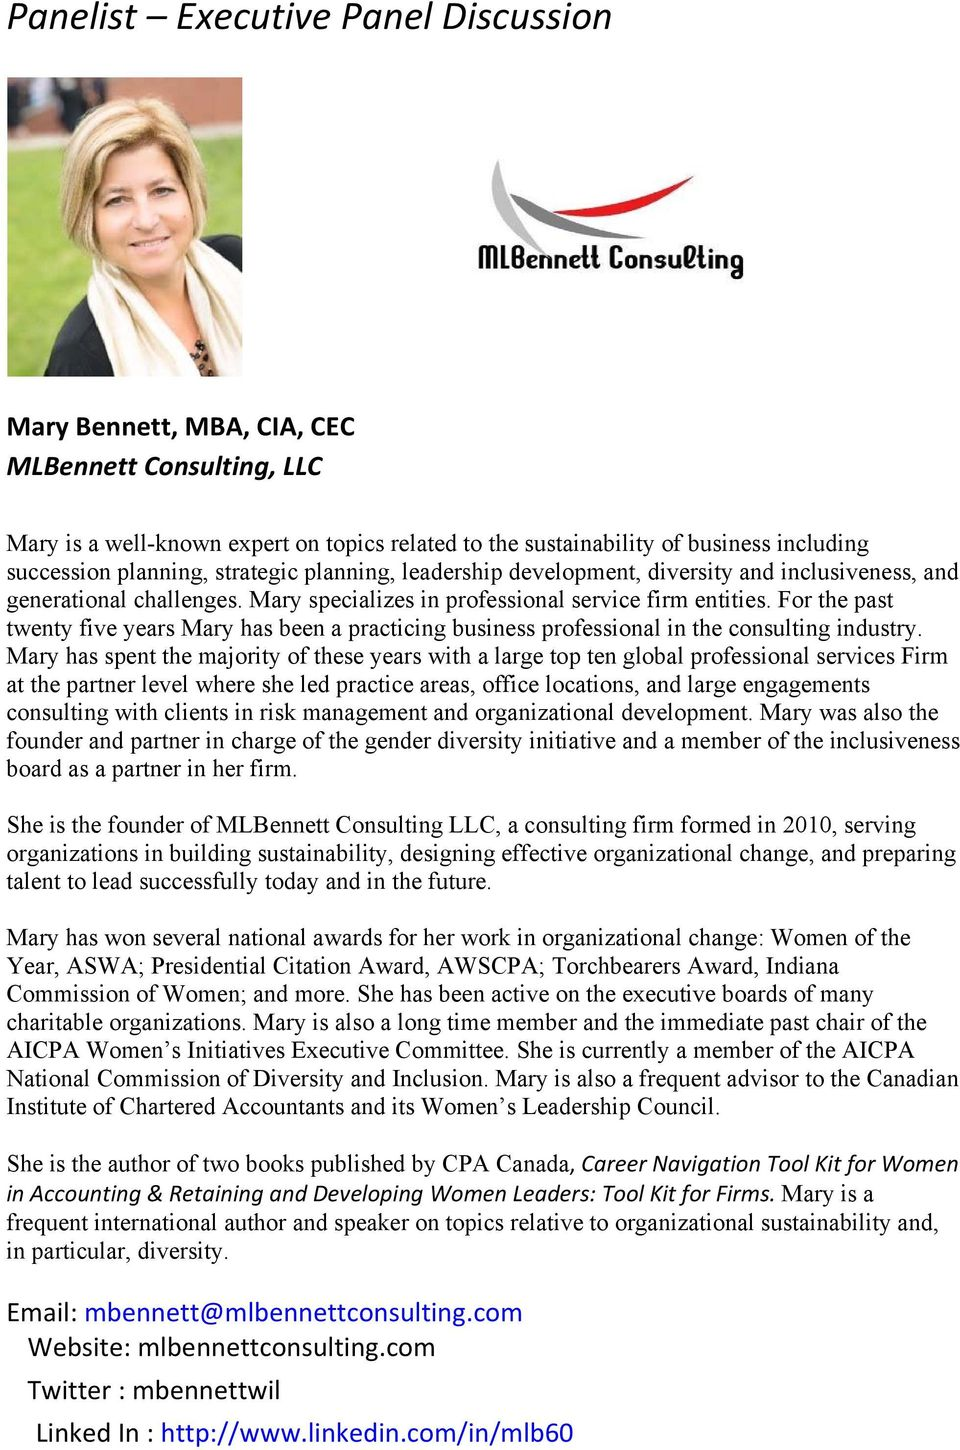 For the past twenty five years Mary has been a practicing business professional in the consulting industry.